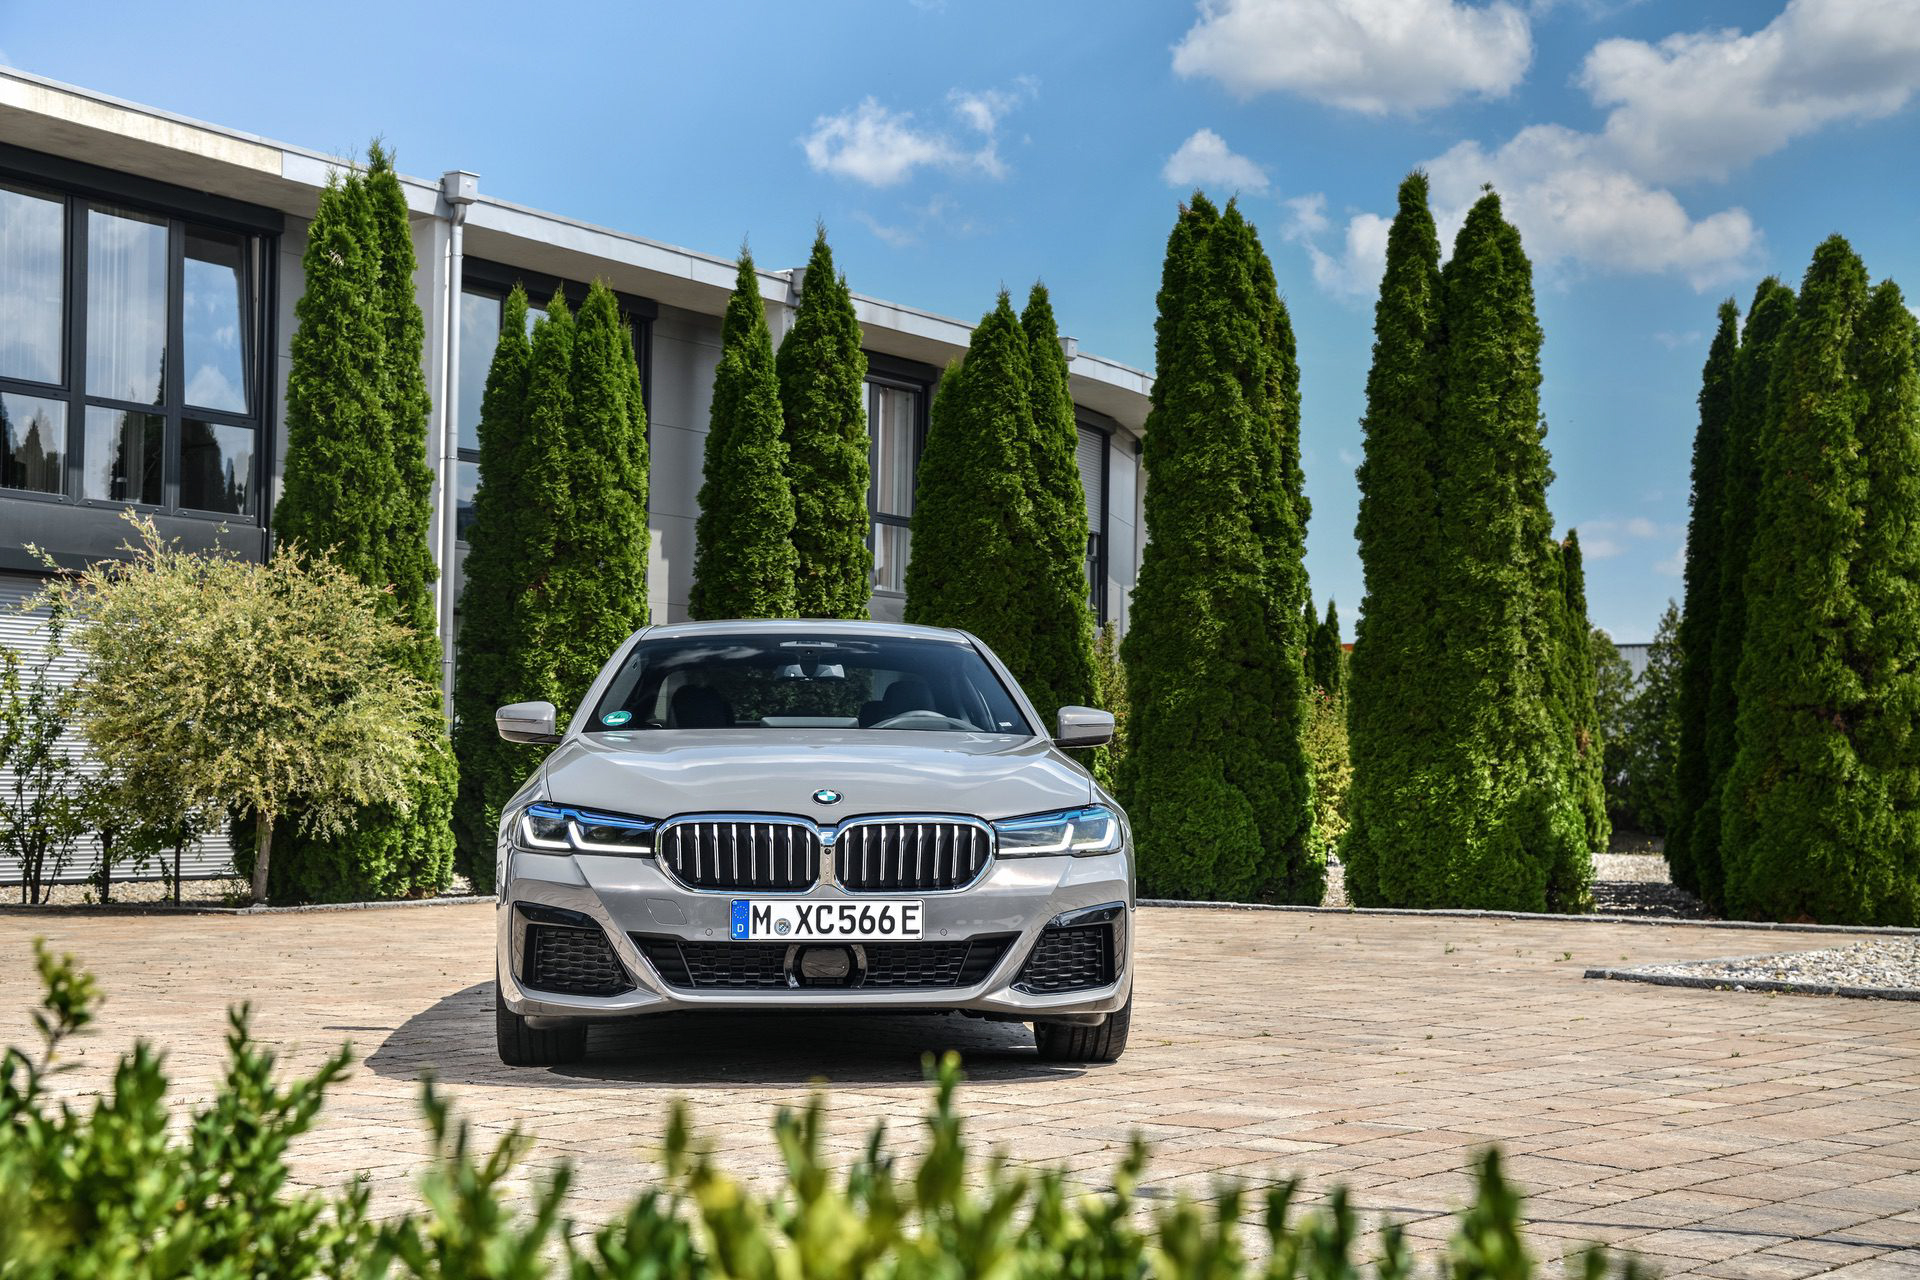 2021 G30 BMW 545e xDrive detailed - fastest BMW PHEV with ...